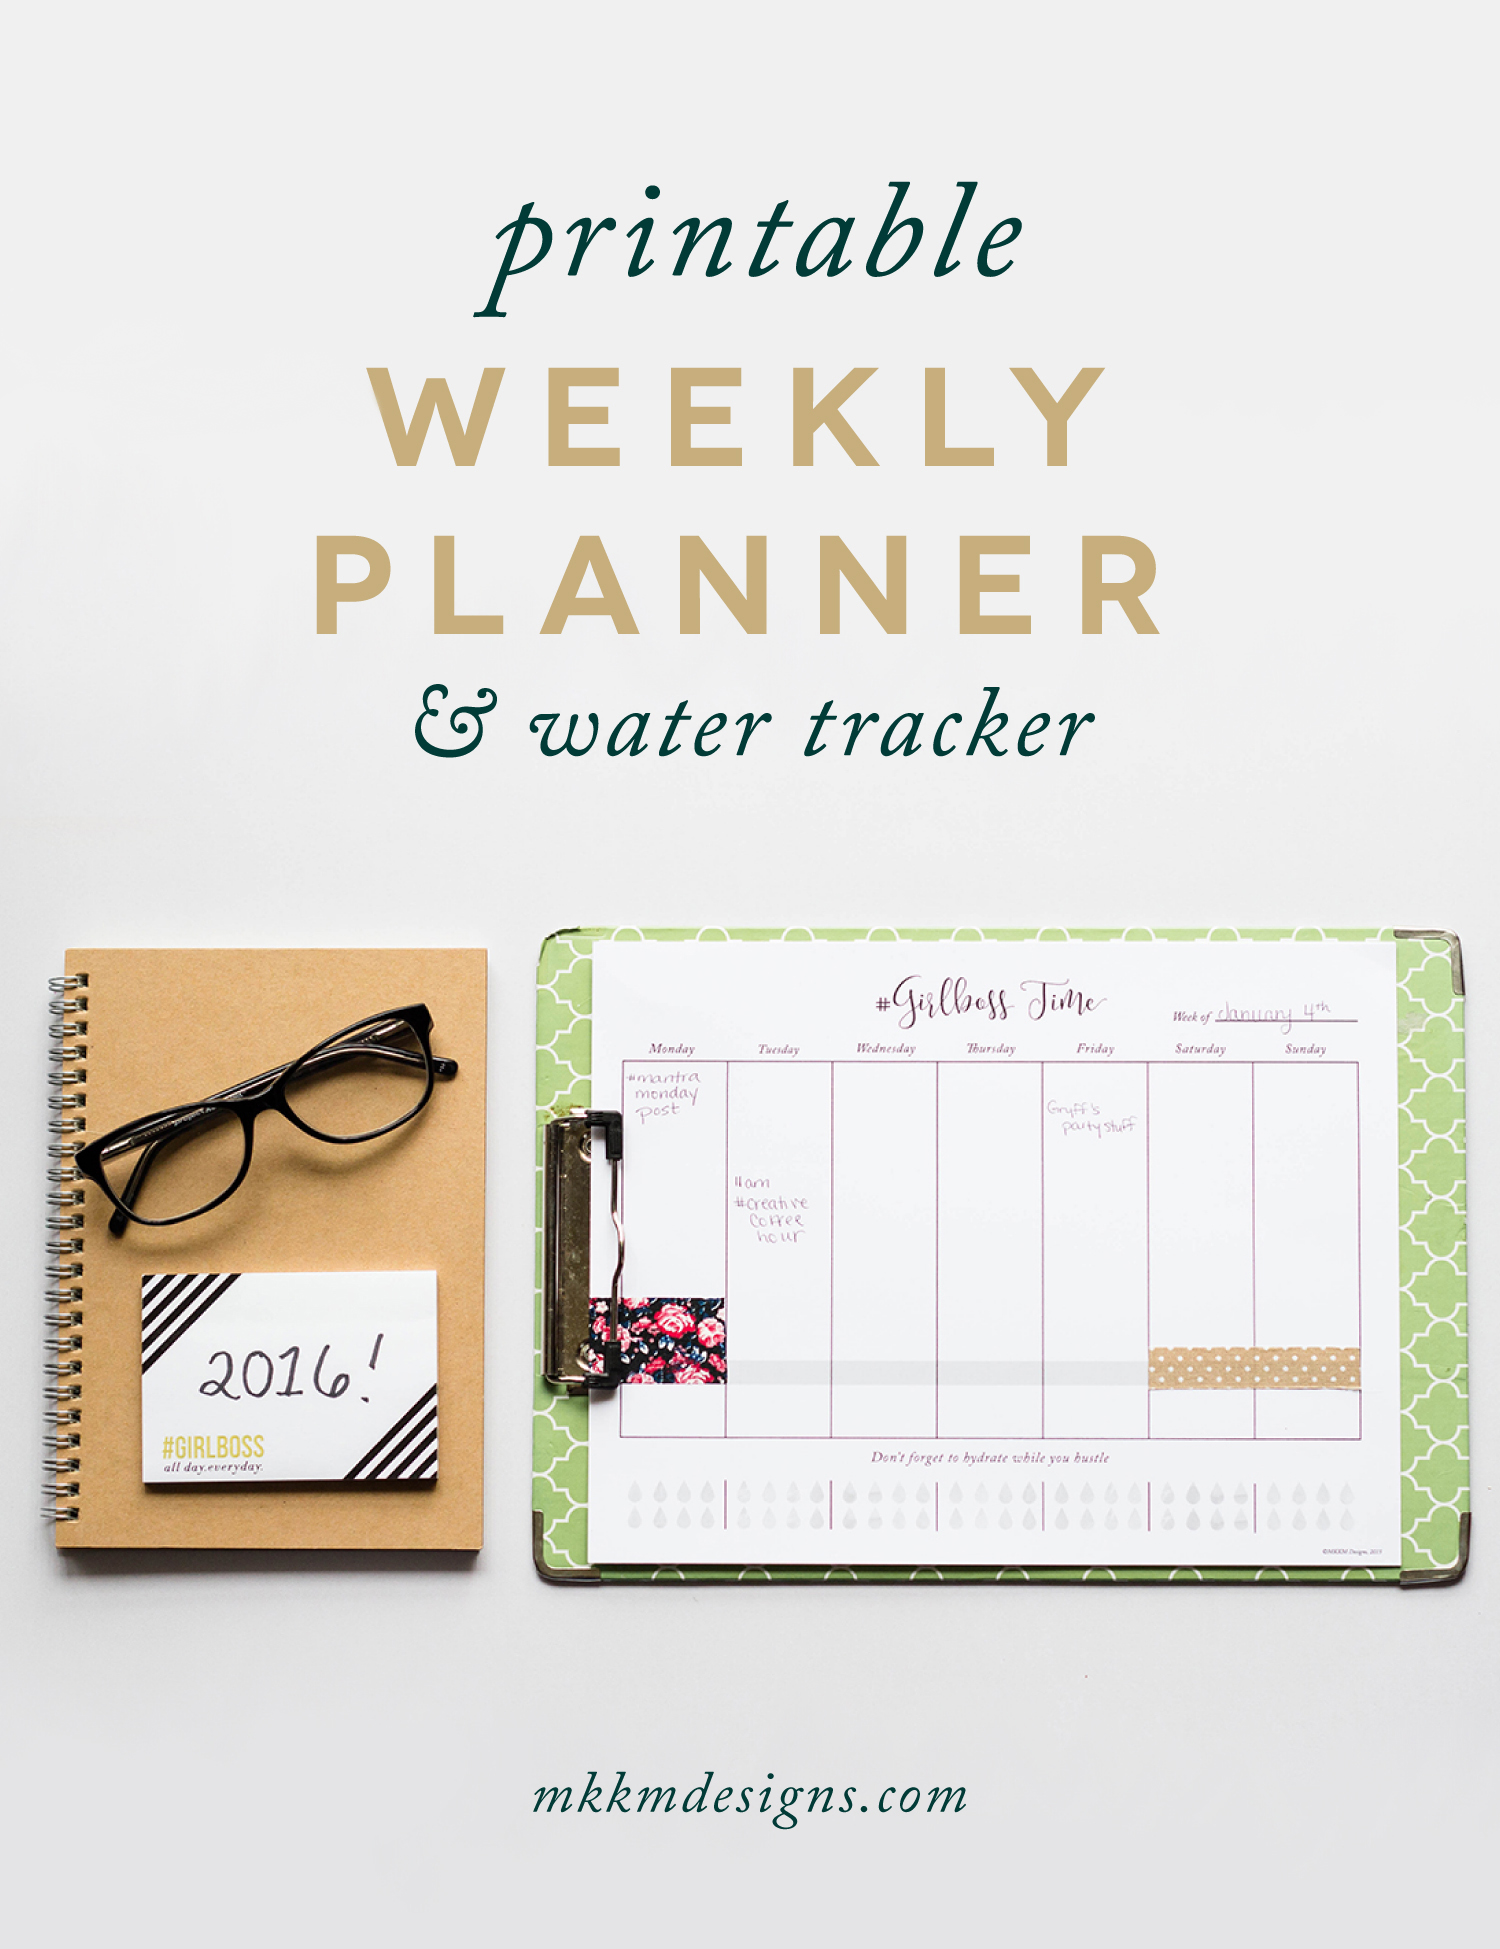 Printable Weekly Planner by MKKM